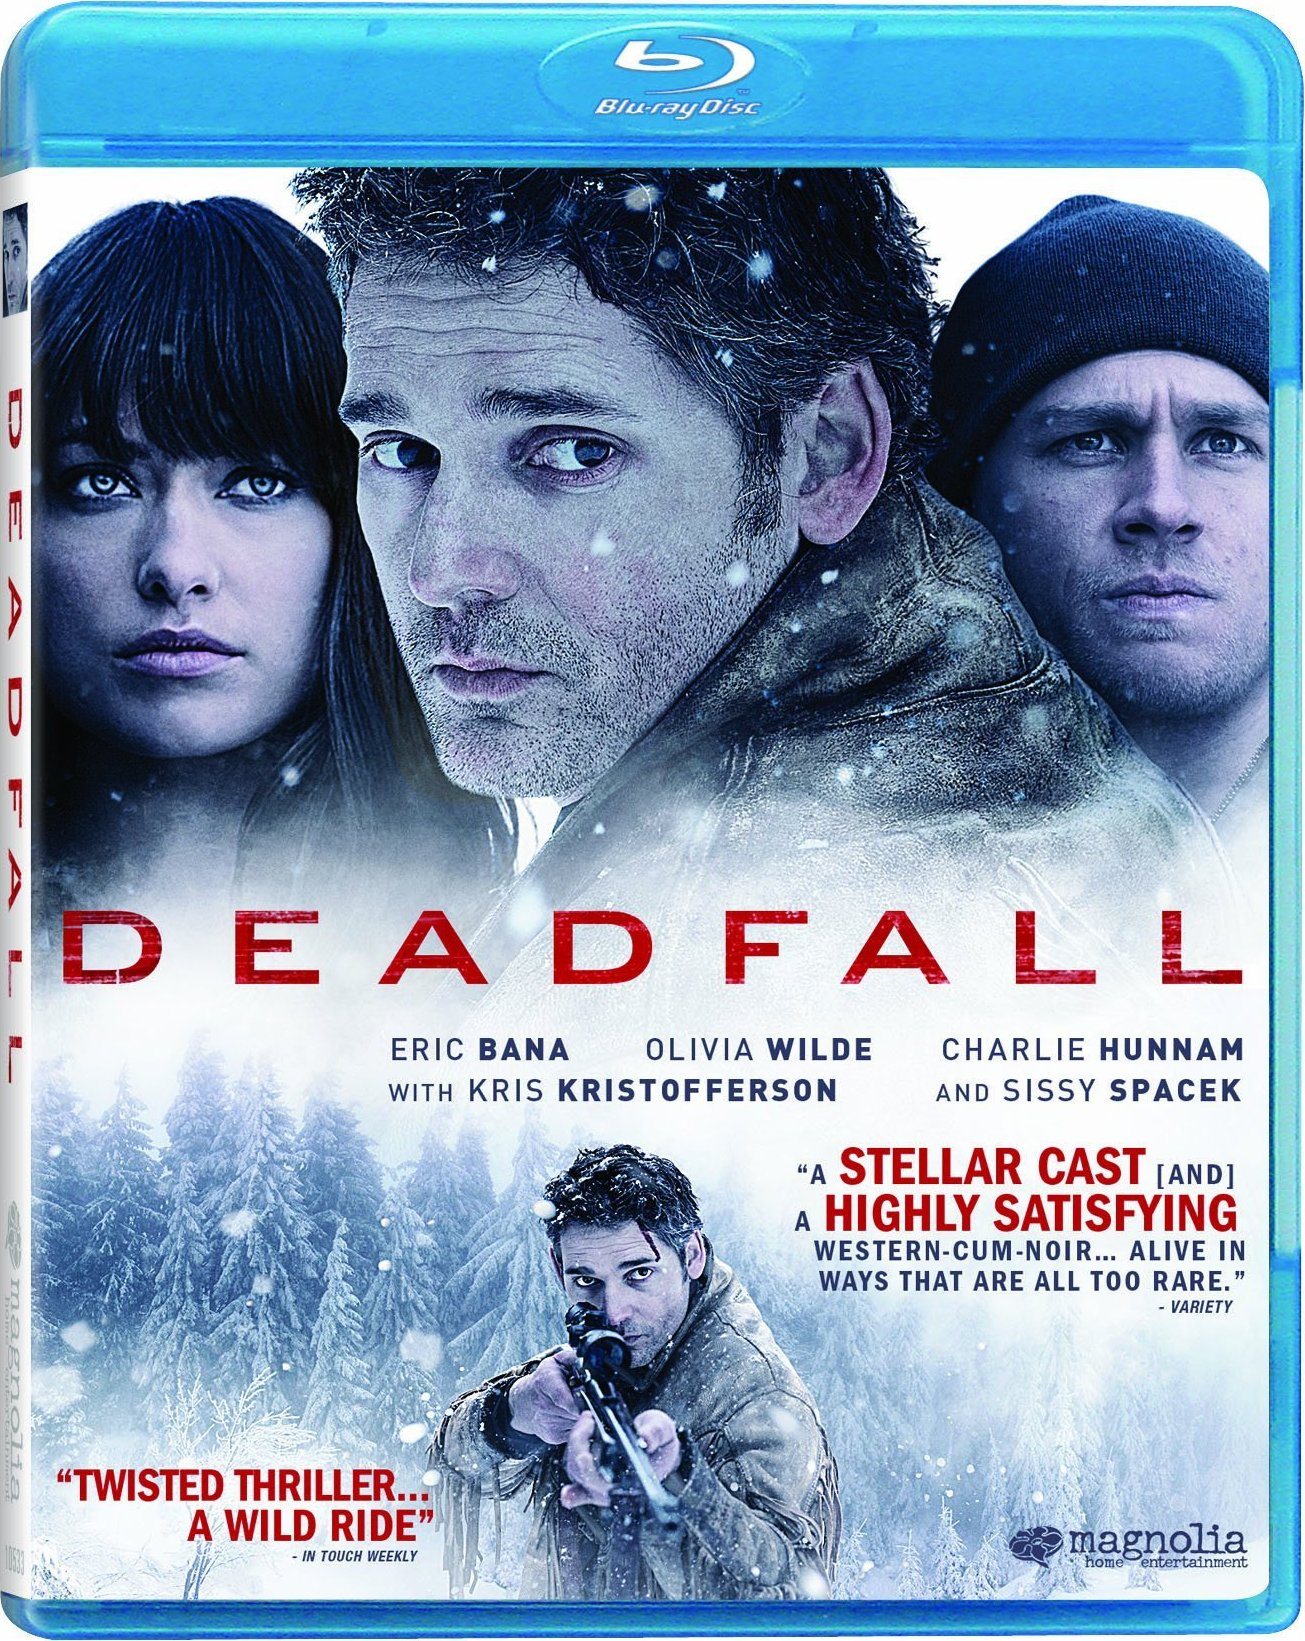 Deadfall (Cold Blood) 2012 | Blu-Ray 720p | Multi-Langues DTS| TRUEFRENCH